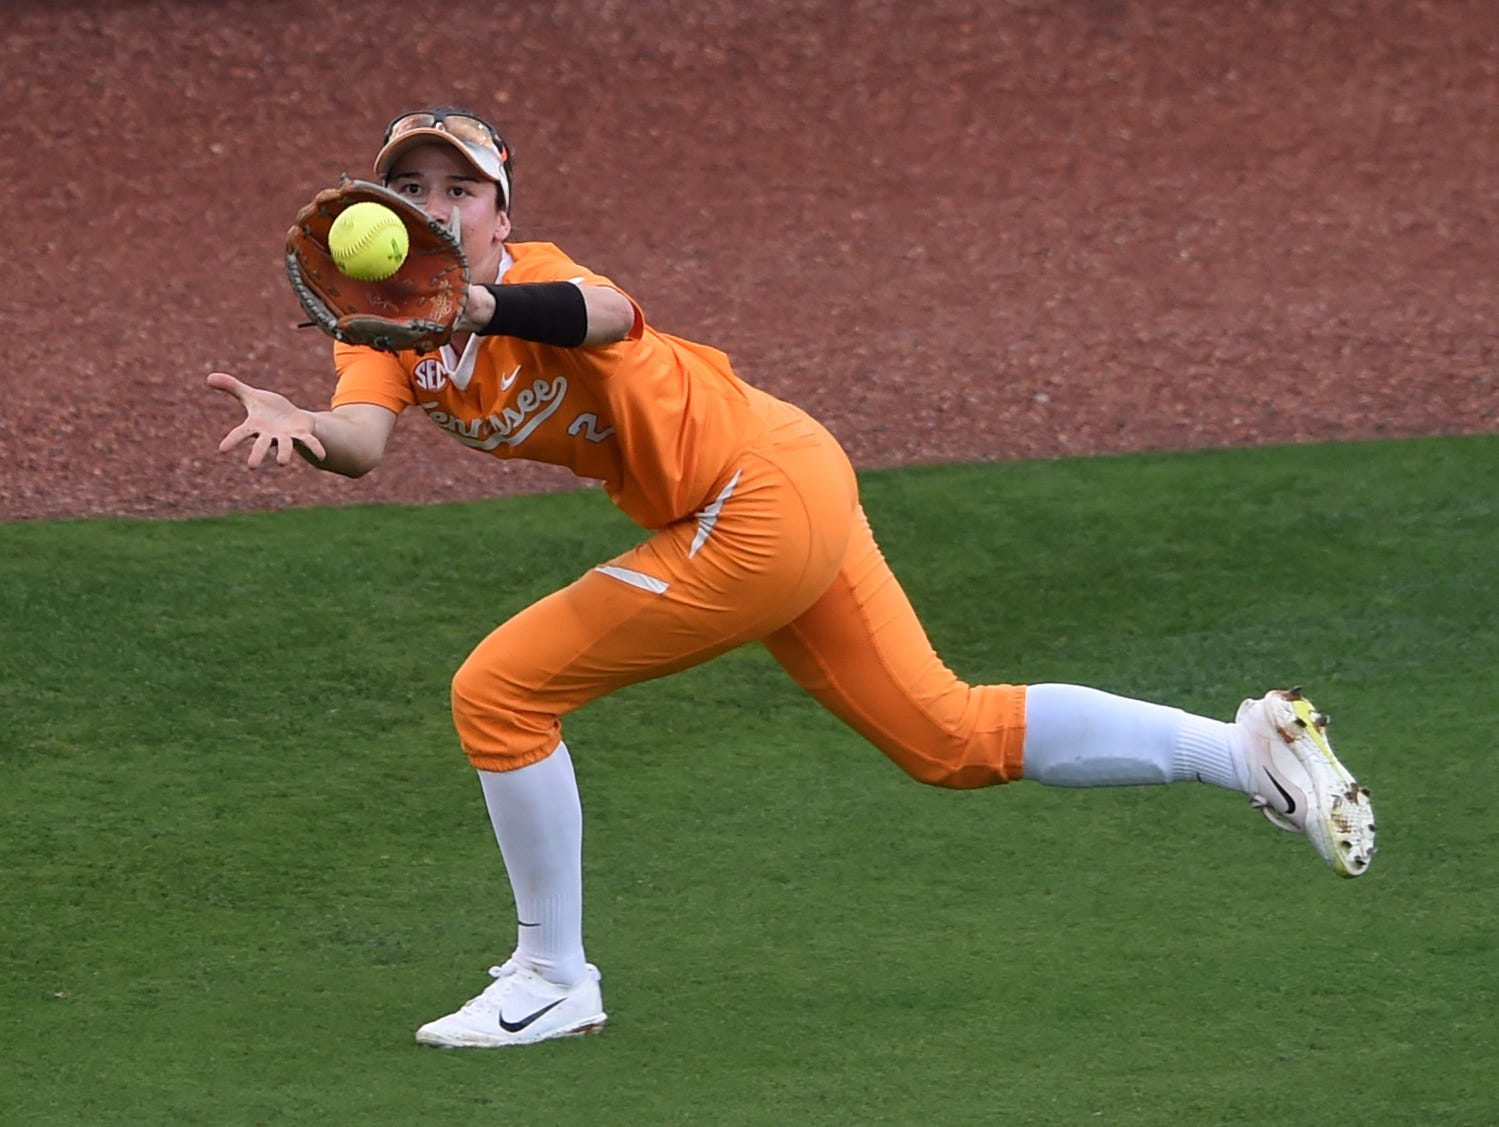 Tennessee's Jenna Holcomb (2) makes a play in left field during an NCAA Super Regional game between Tennessee and Texas A&M at Sherri Parker Lee Stadium on Saturday, May 27, 2017. Texas A&M defeated Tennessee 6-5.